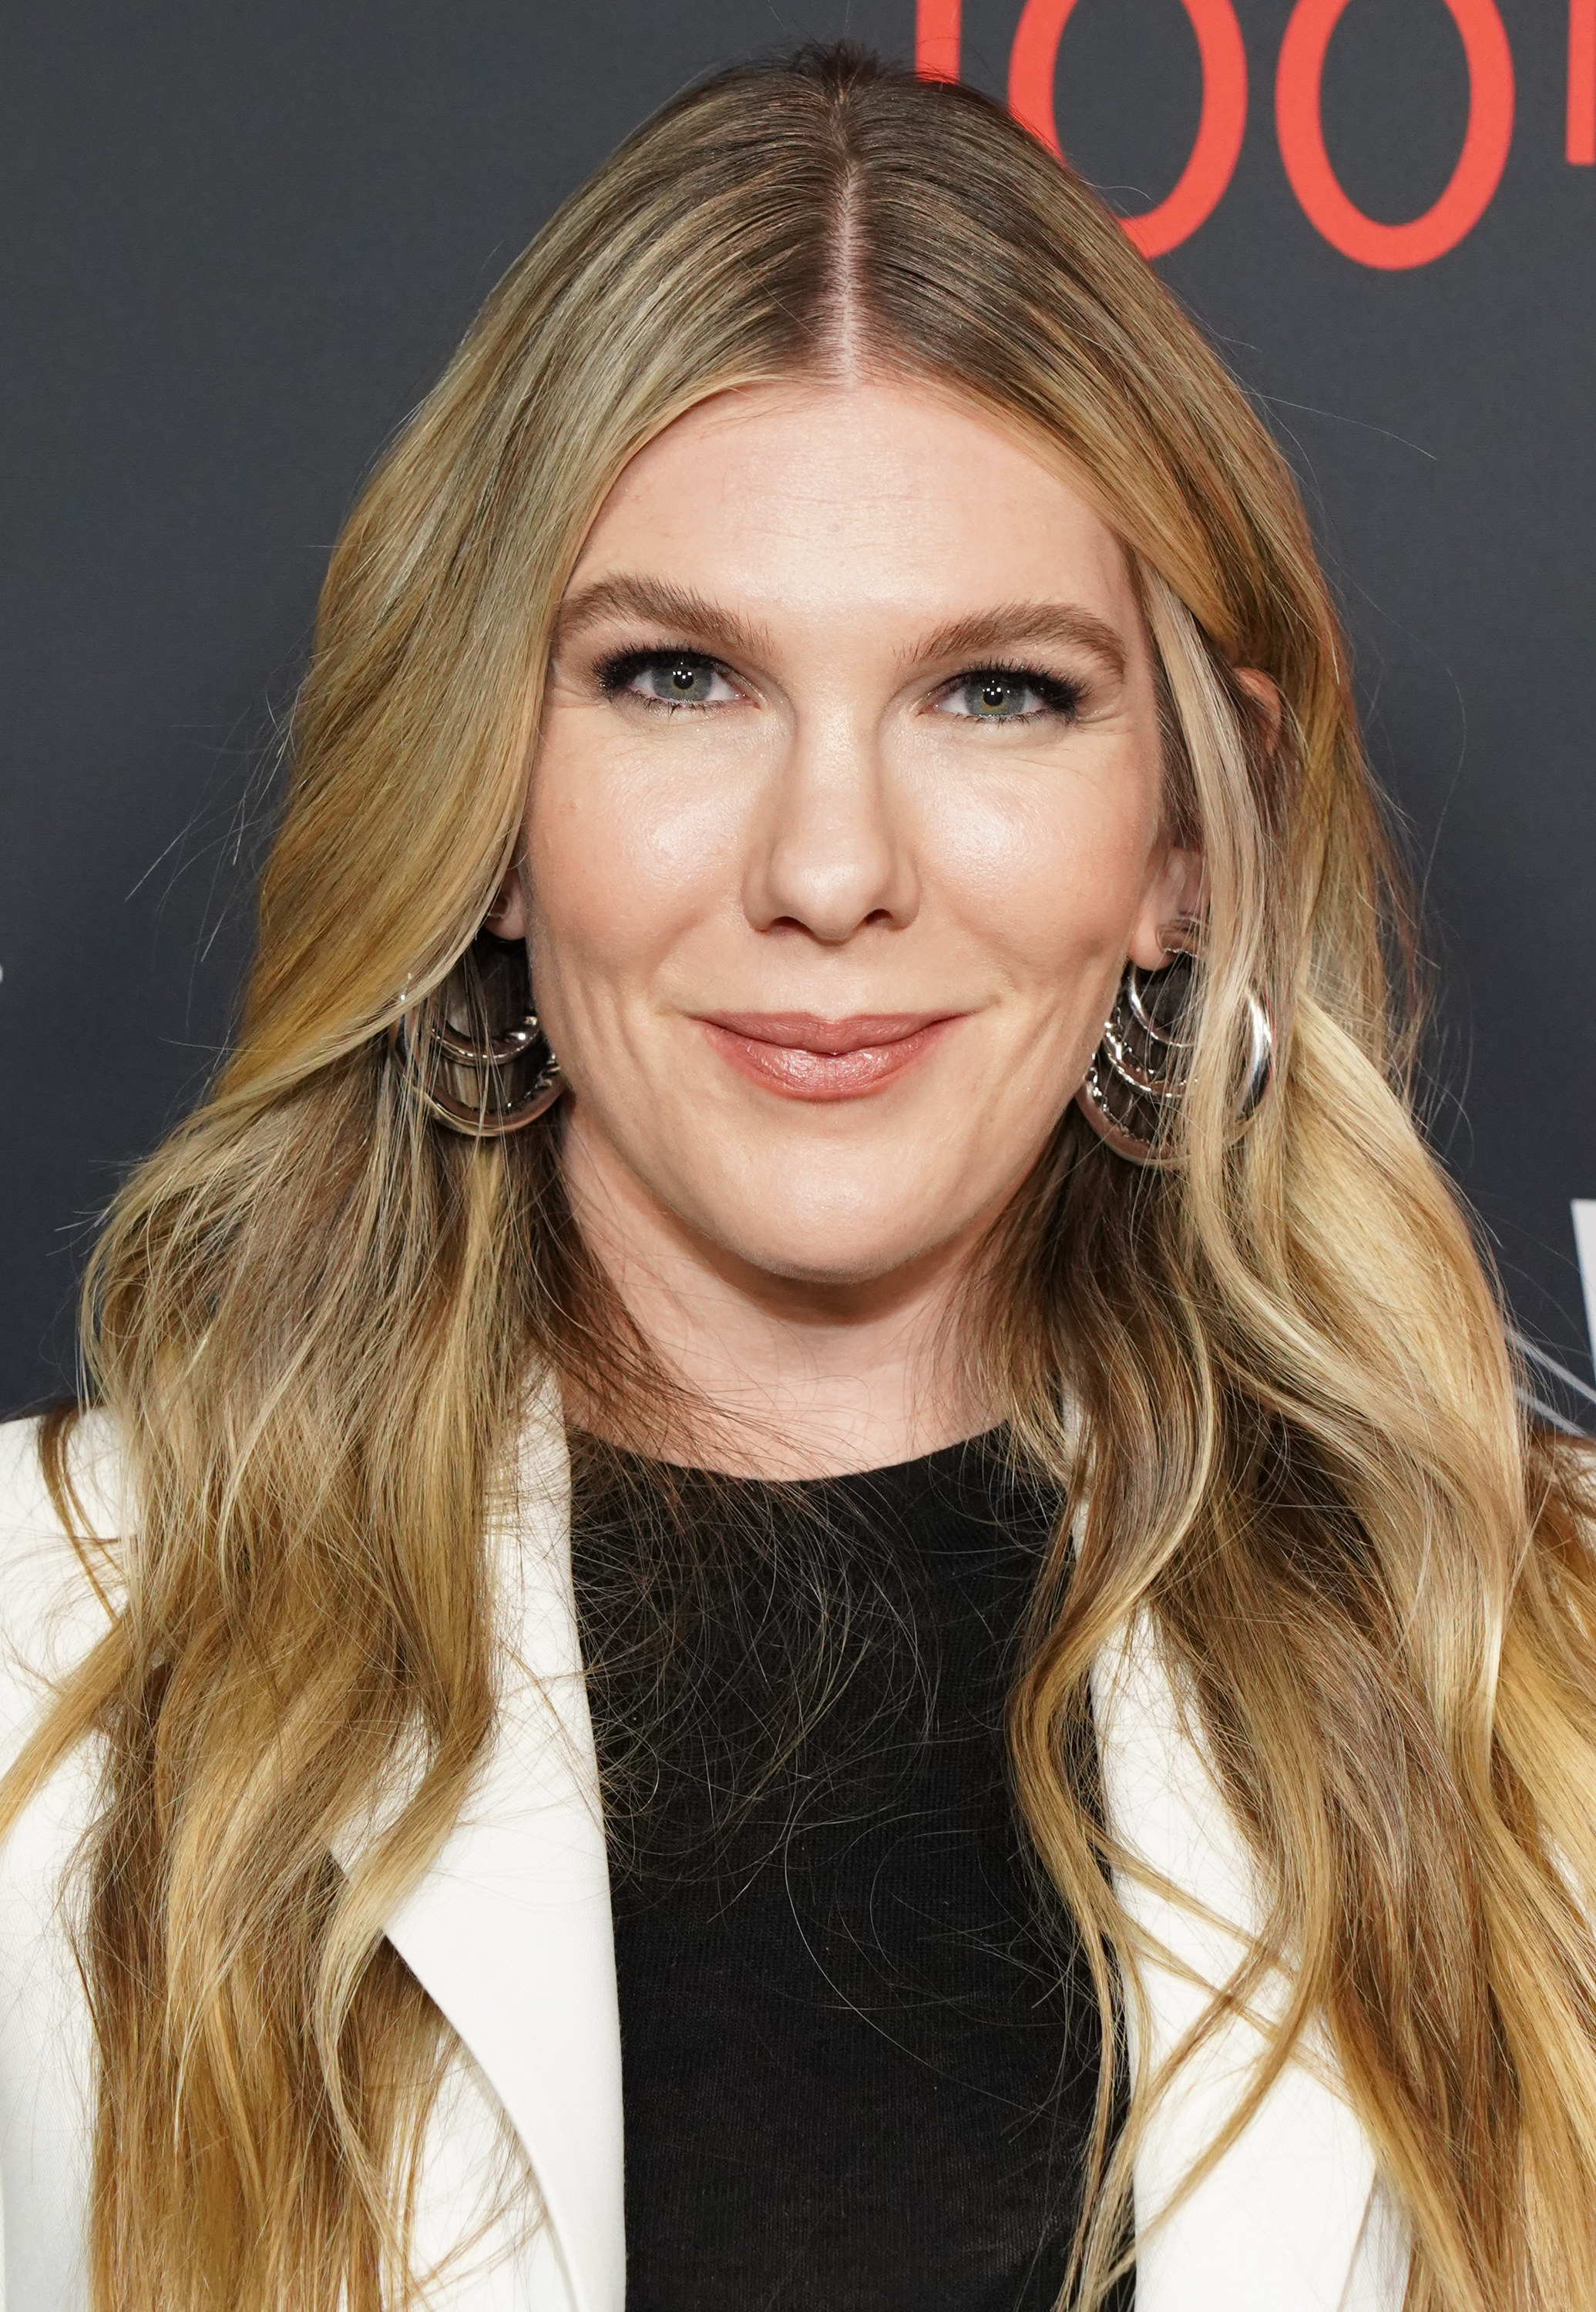 Lily Rabe on the red carpet